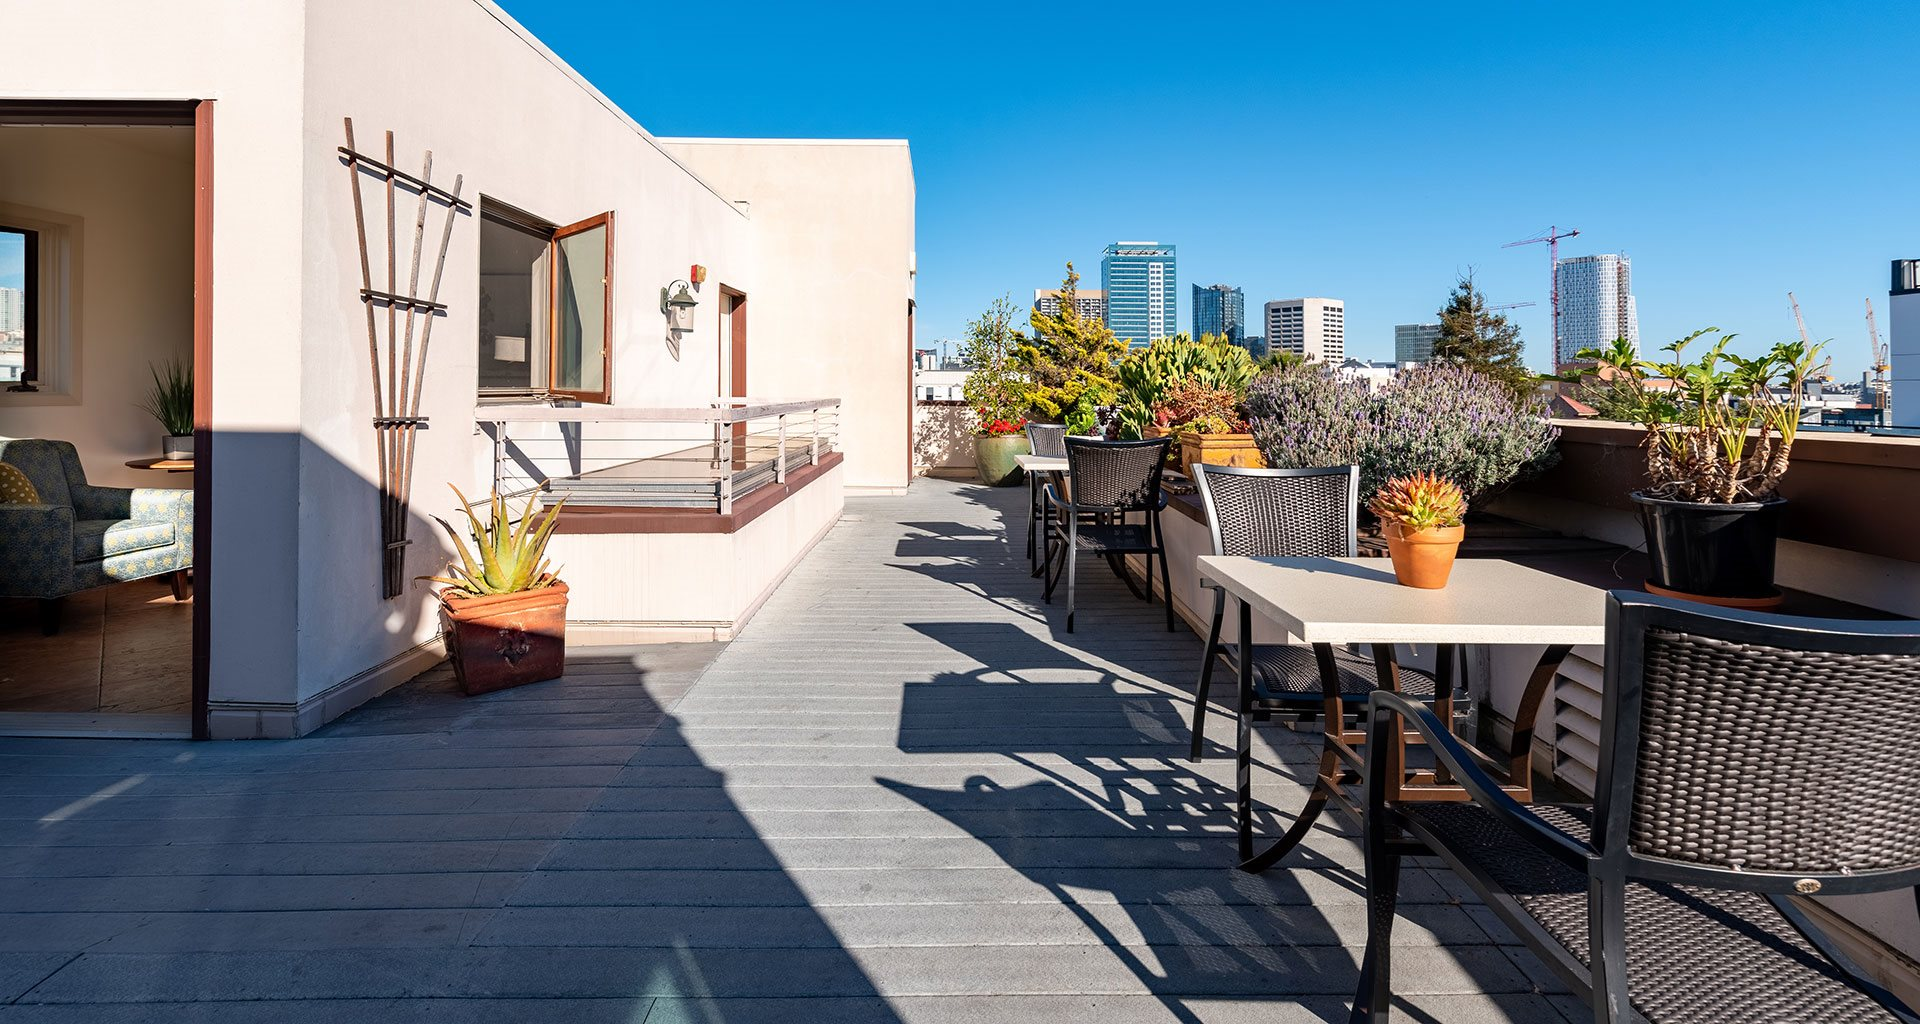 Rooftop Patio And Garden at The Village at Hayes Valley, San Francisco, 94102